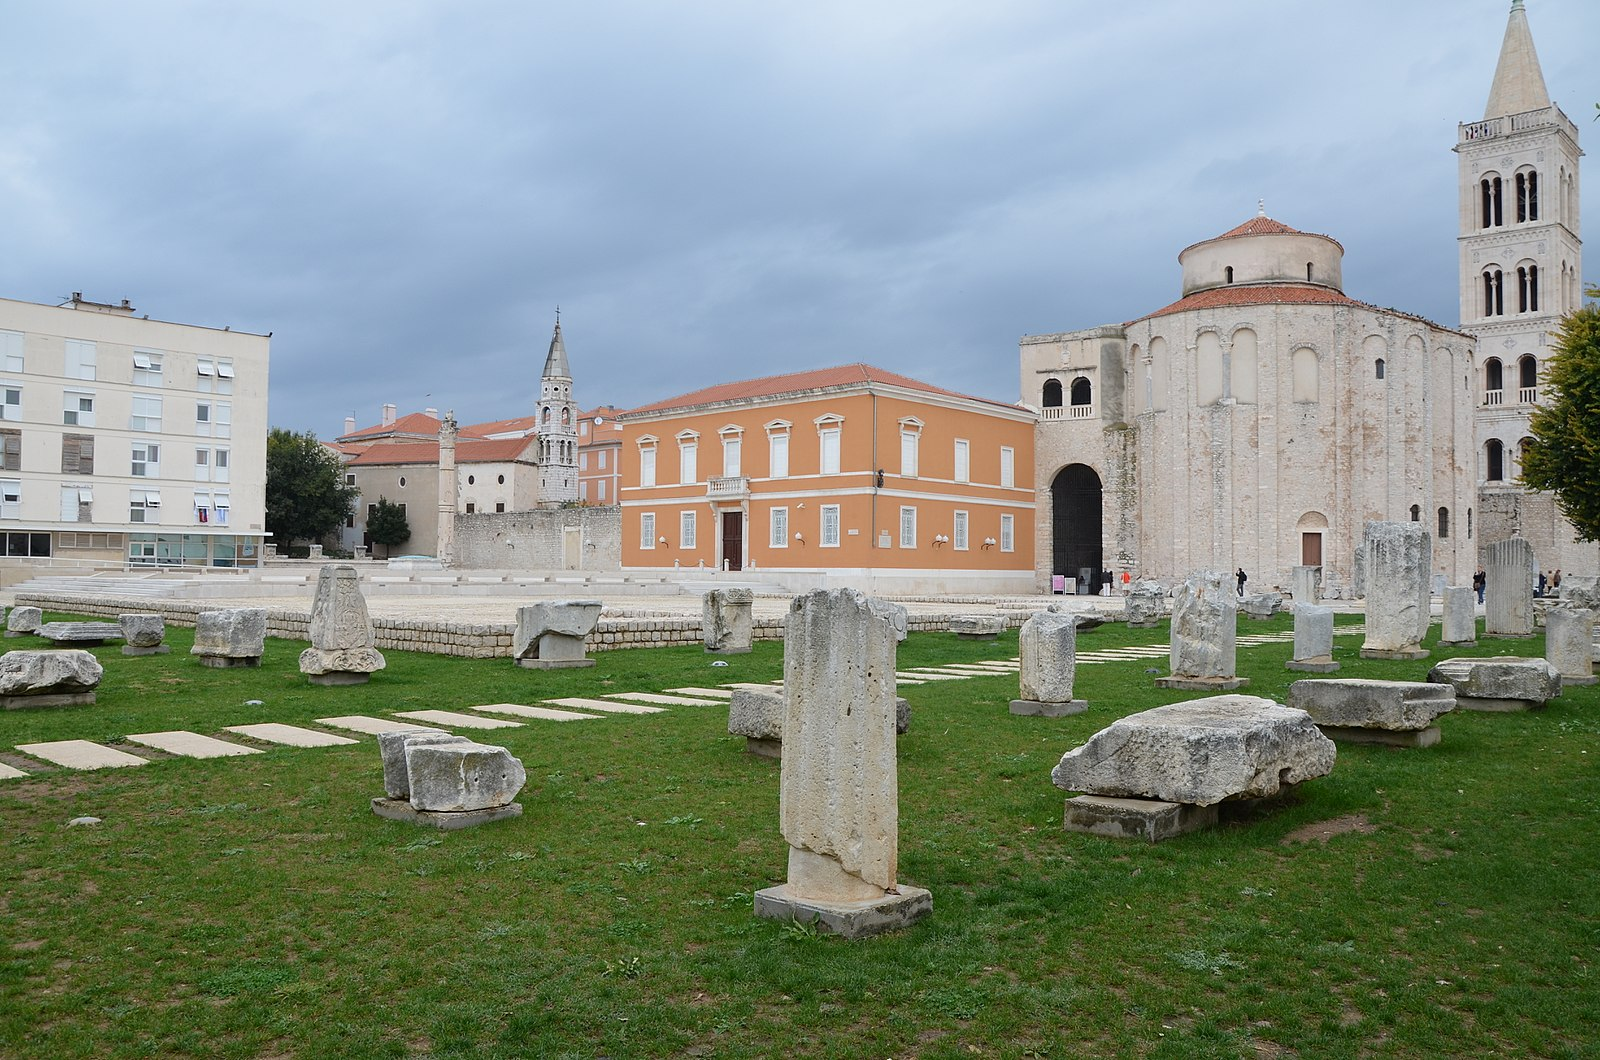 zadar muslim Choose from the best interhome vacation rentals in zadar, croatia from the list below and book now.